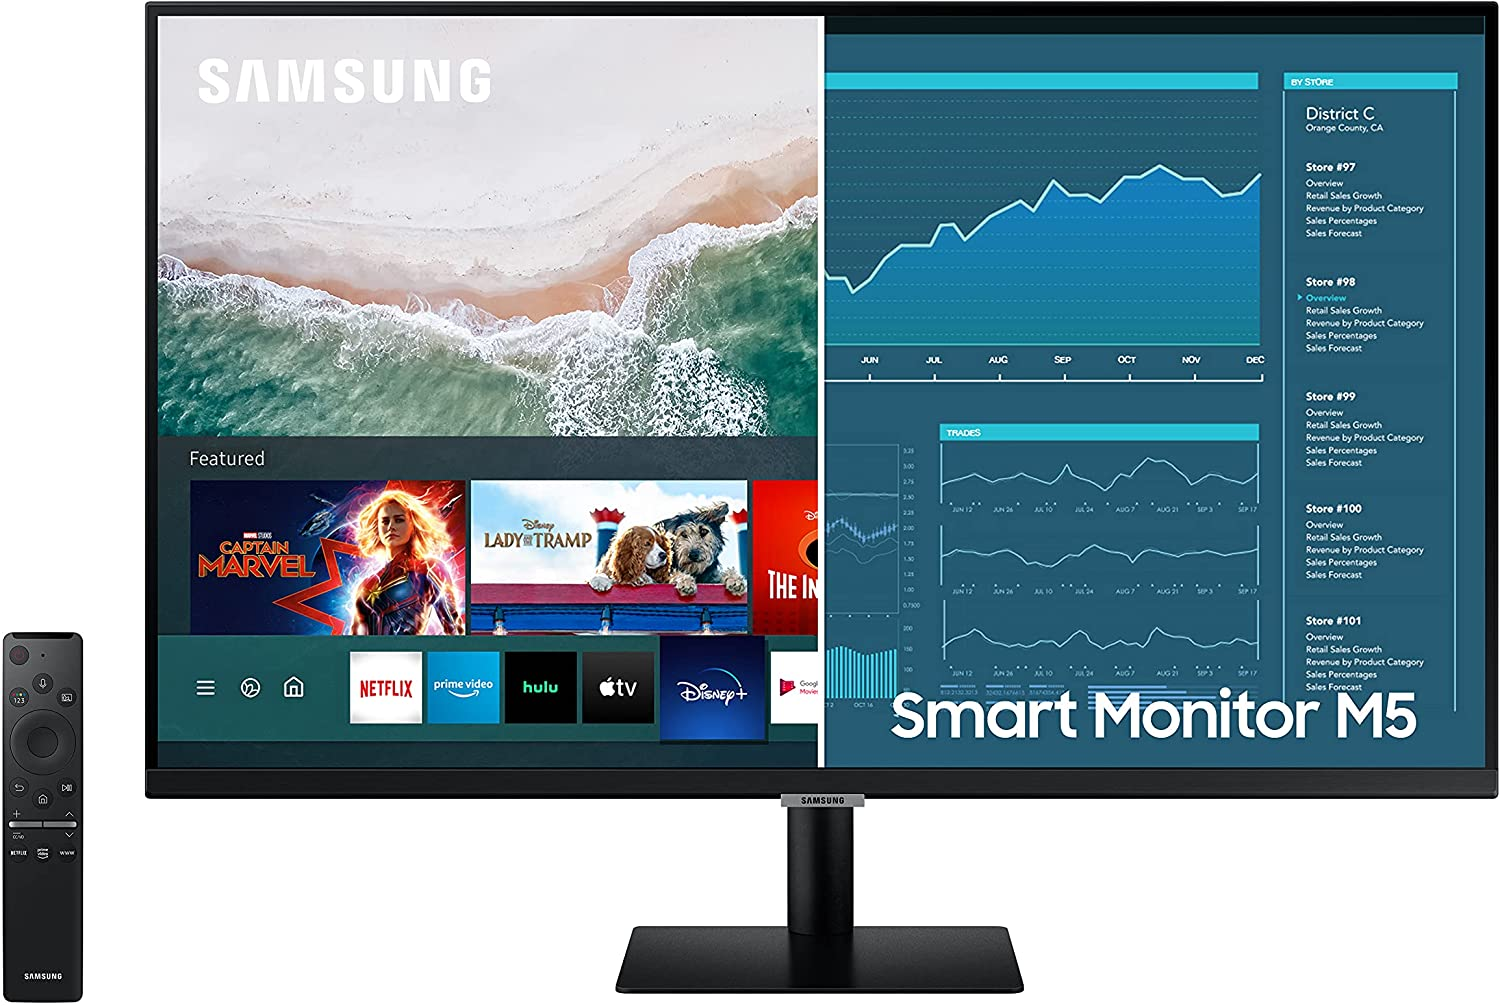 SAMSUNG 27-inch M5 Smart Monitor with Netflix, YouTube, HBO, Prime Video and Apple TV Streaming Tunerless Tuner Free TV(LS27AM500NNXZA), Black